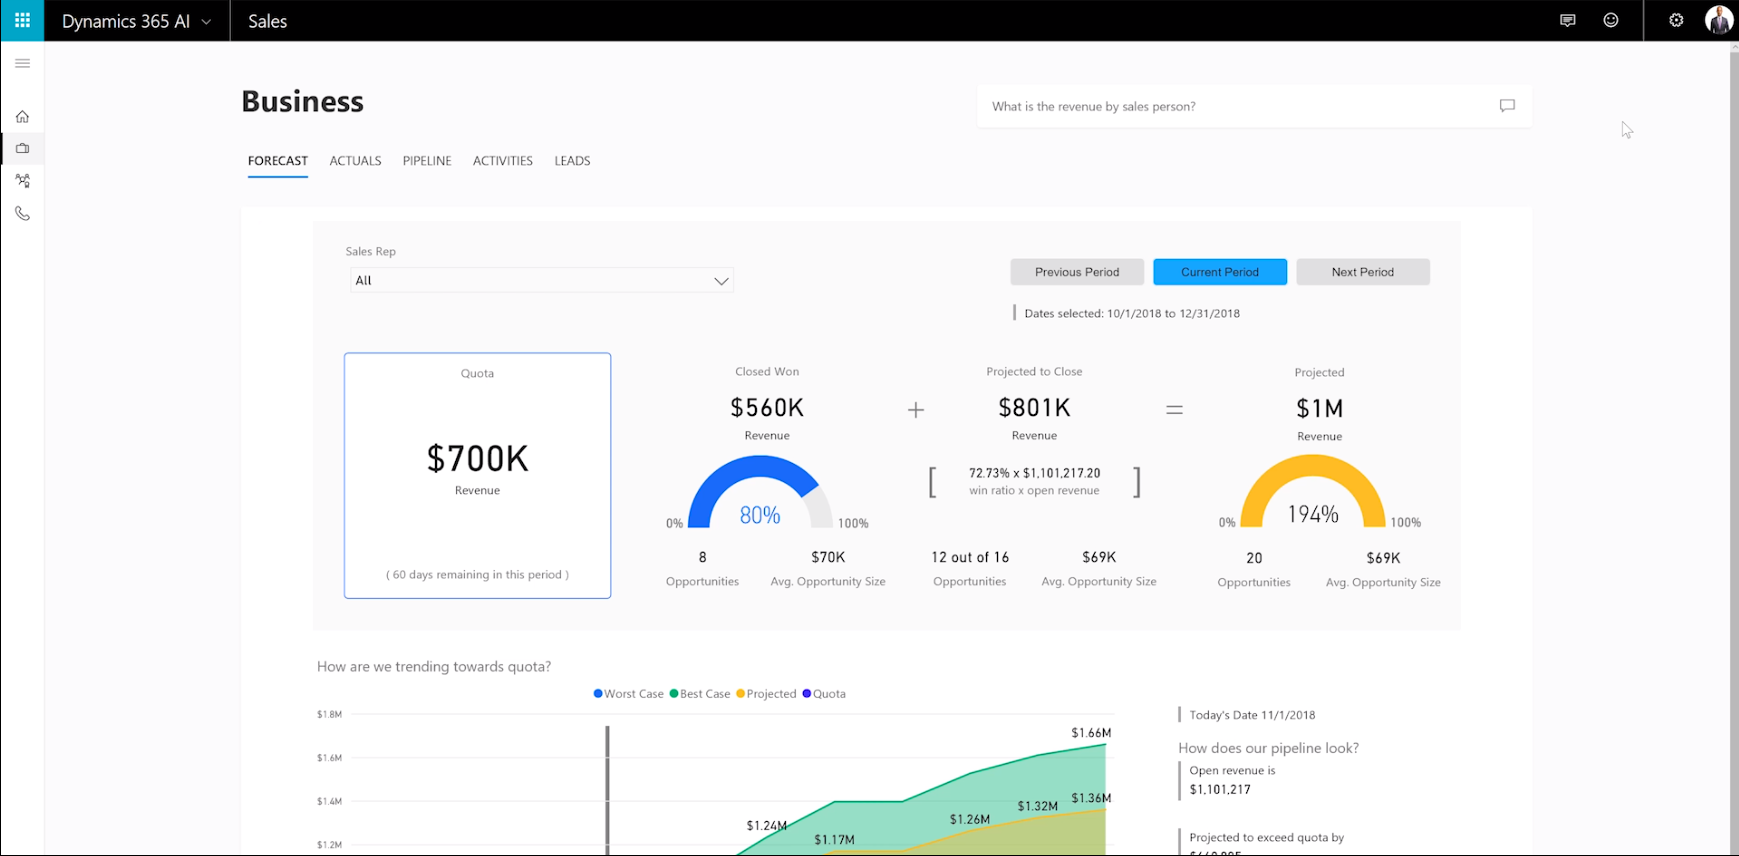 Microsoft Dynamics 365 AI for Sales (video on-boarding